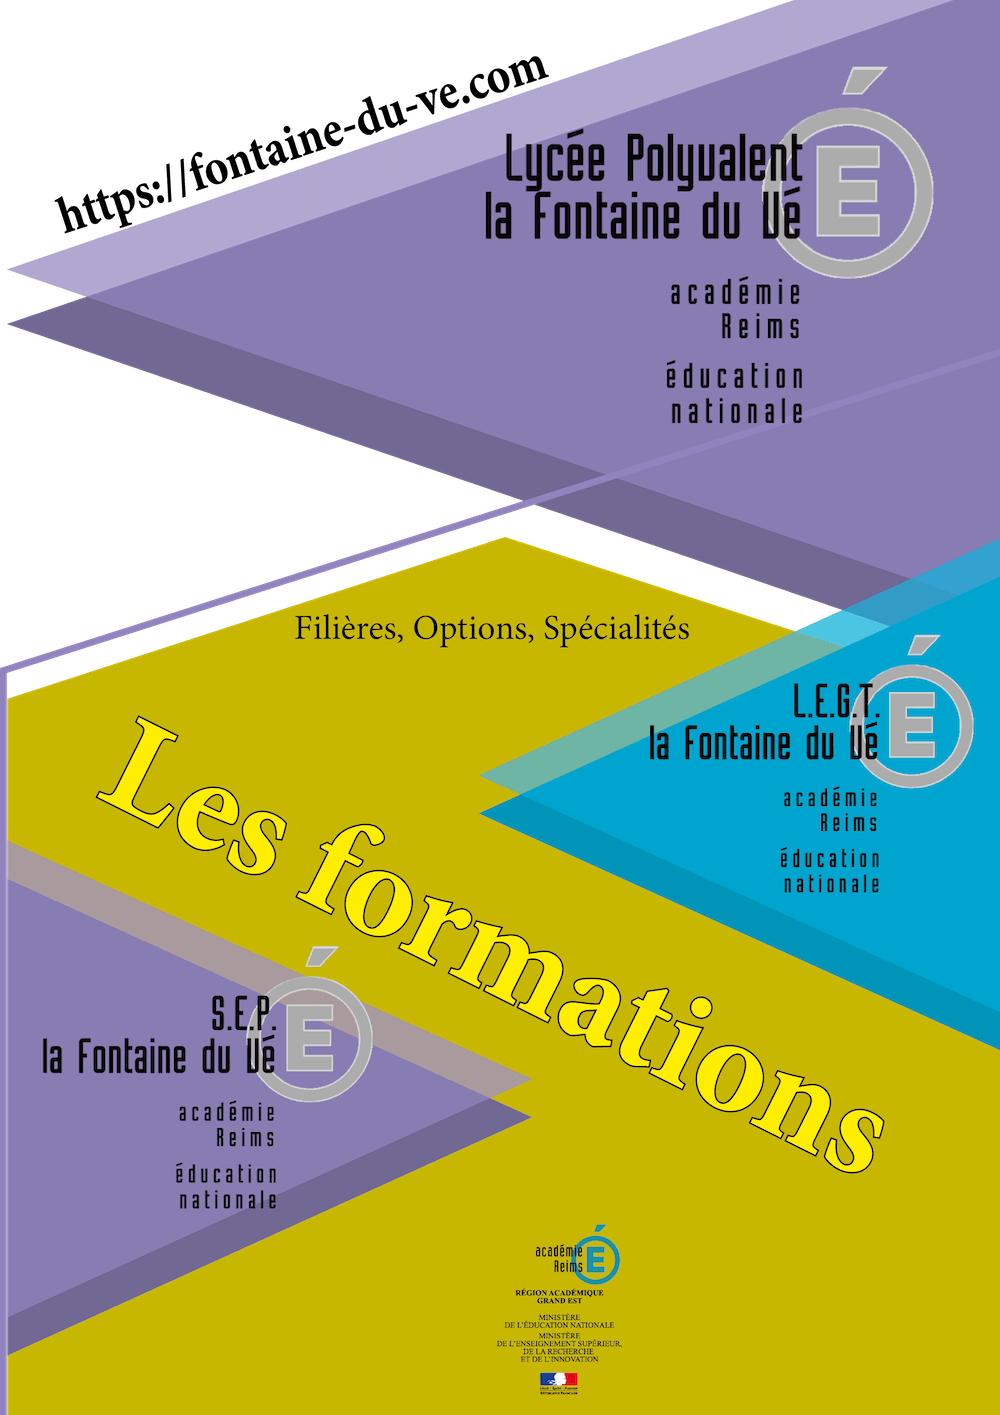 Les formations 2020